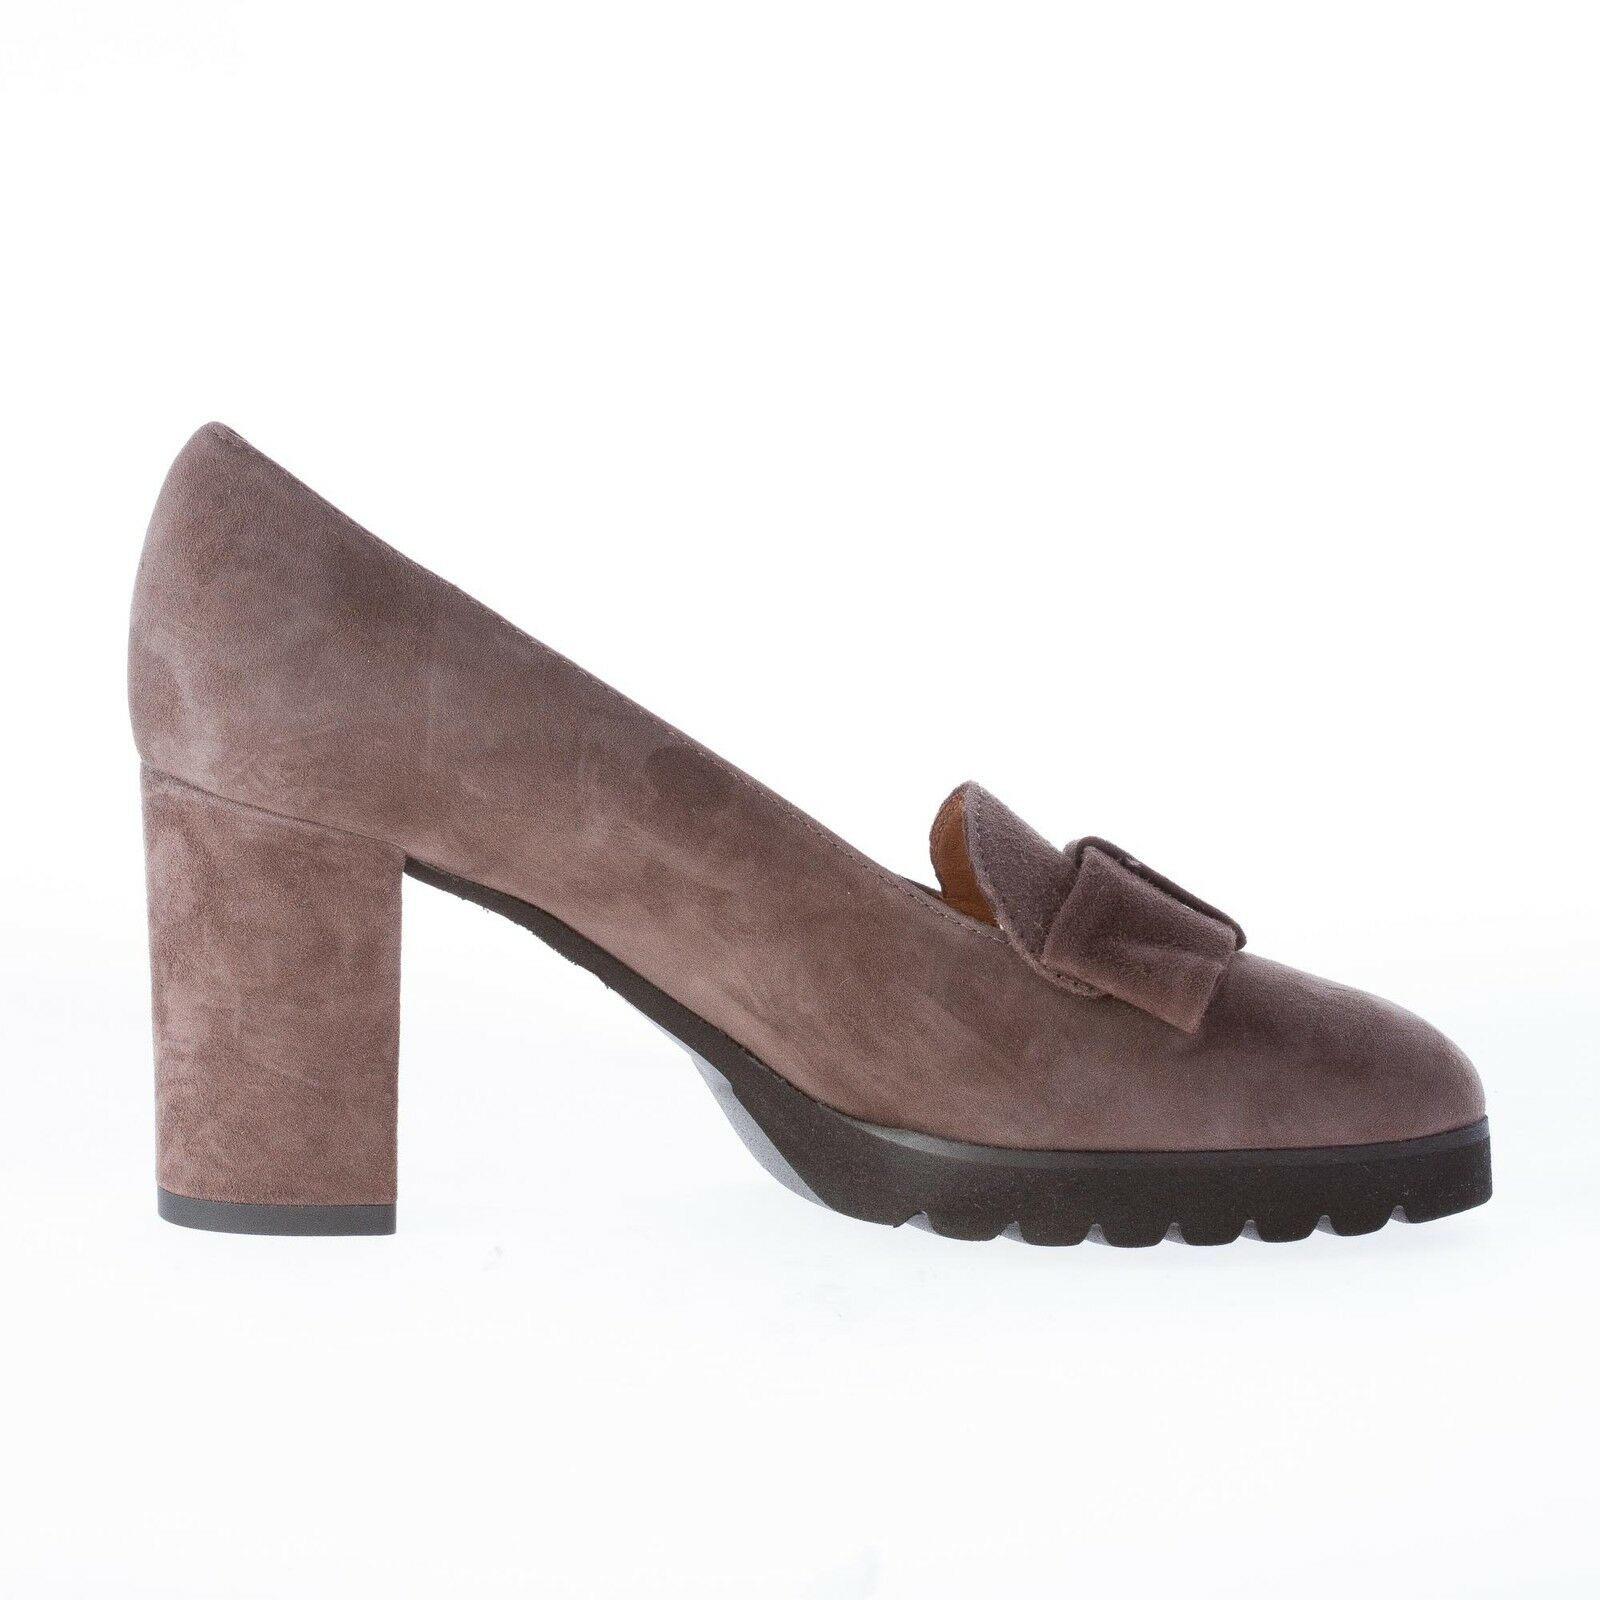 IL BORGO FIRENZE damen schuhe women shoes made in Italy Brown suede bow pump